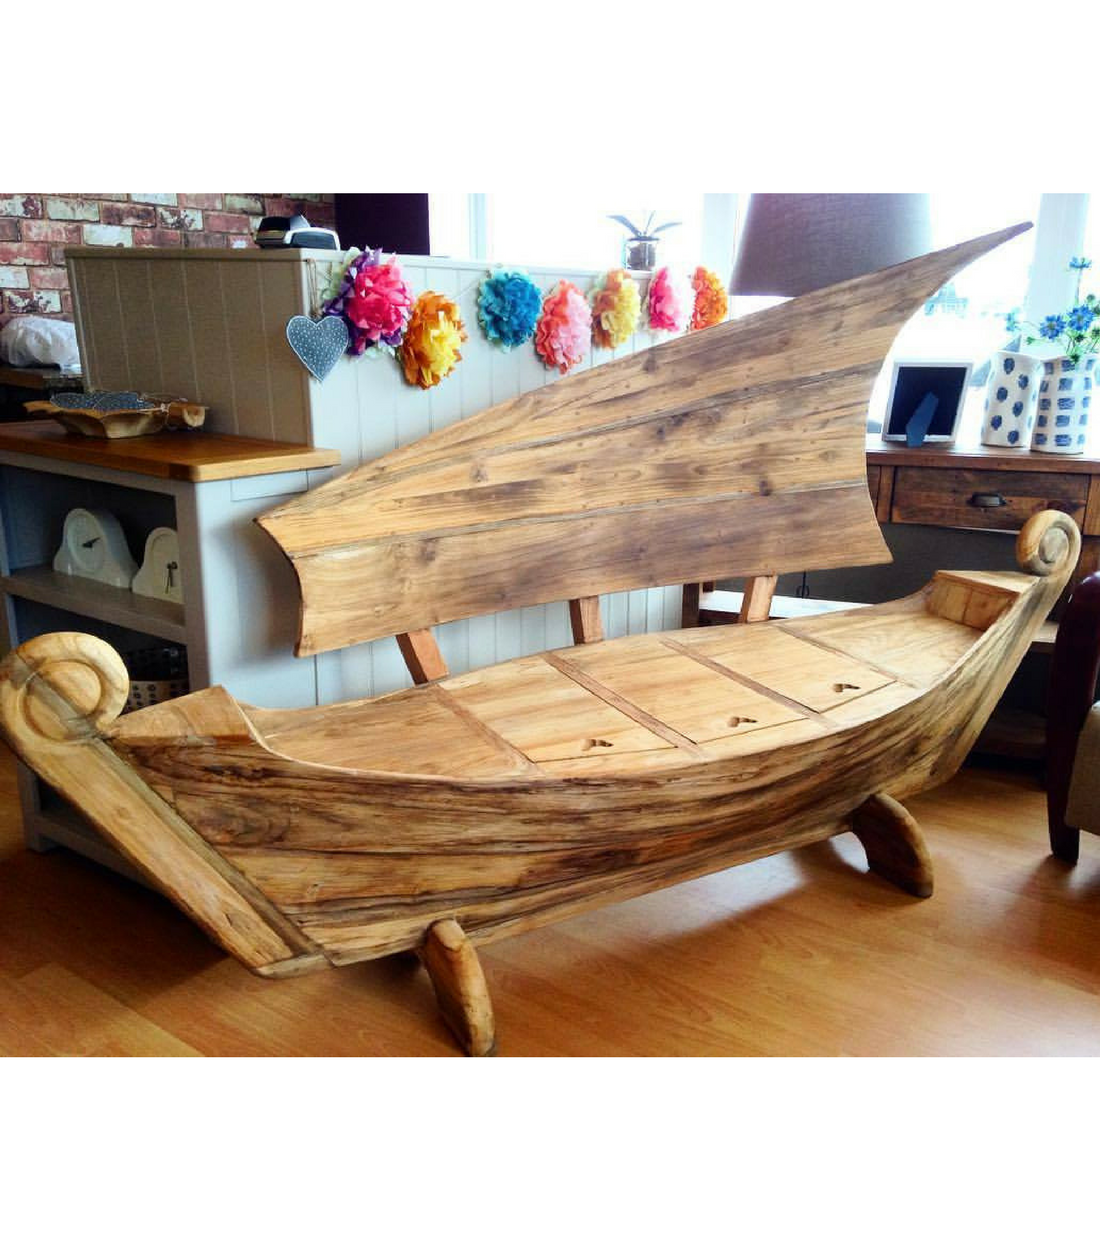 Excellent Teak Boat Bench Geoff Crust Furniture Pabps2019 Chair Design Images Pabps2019Com